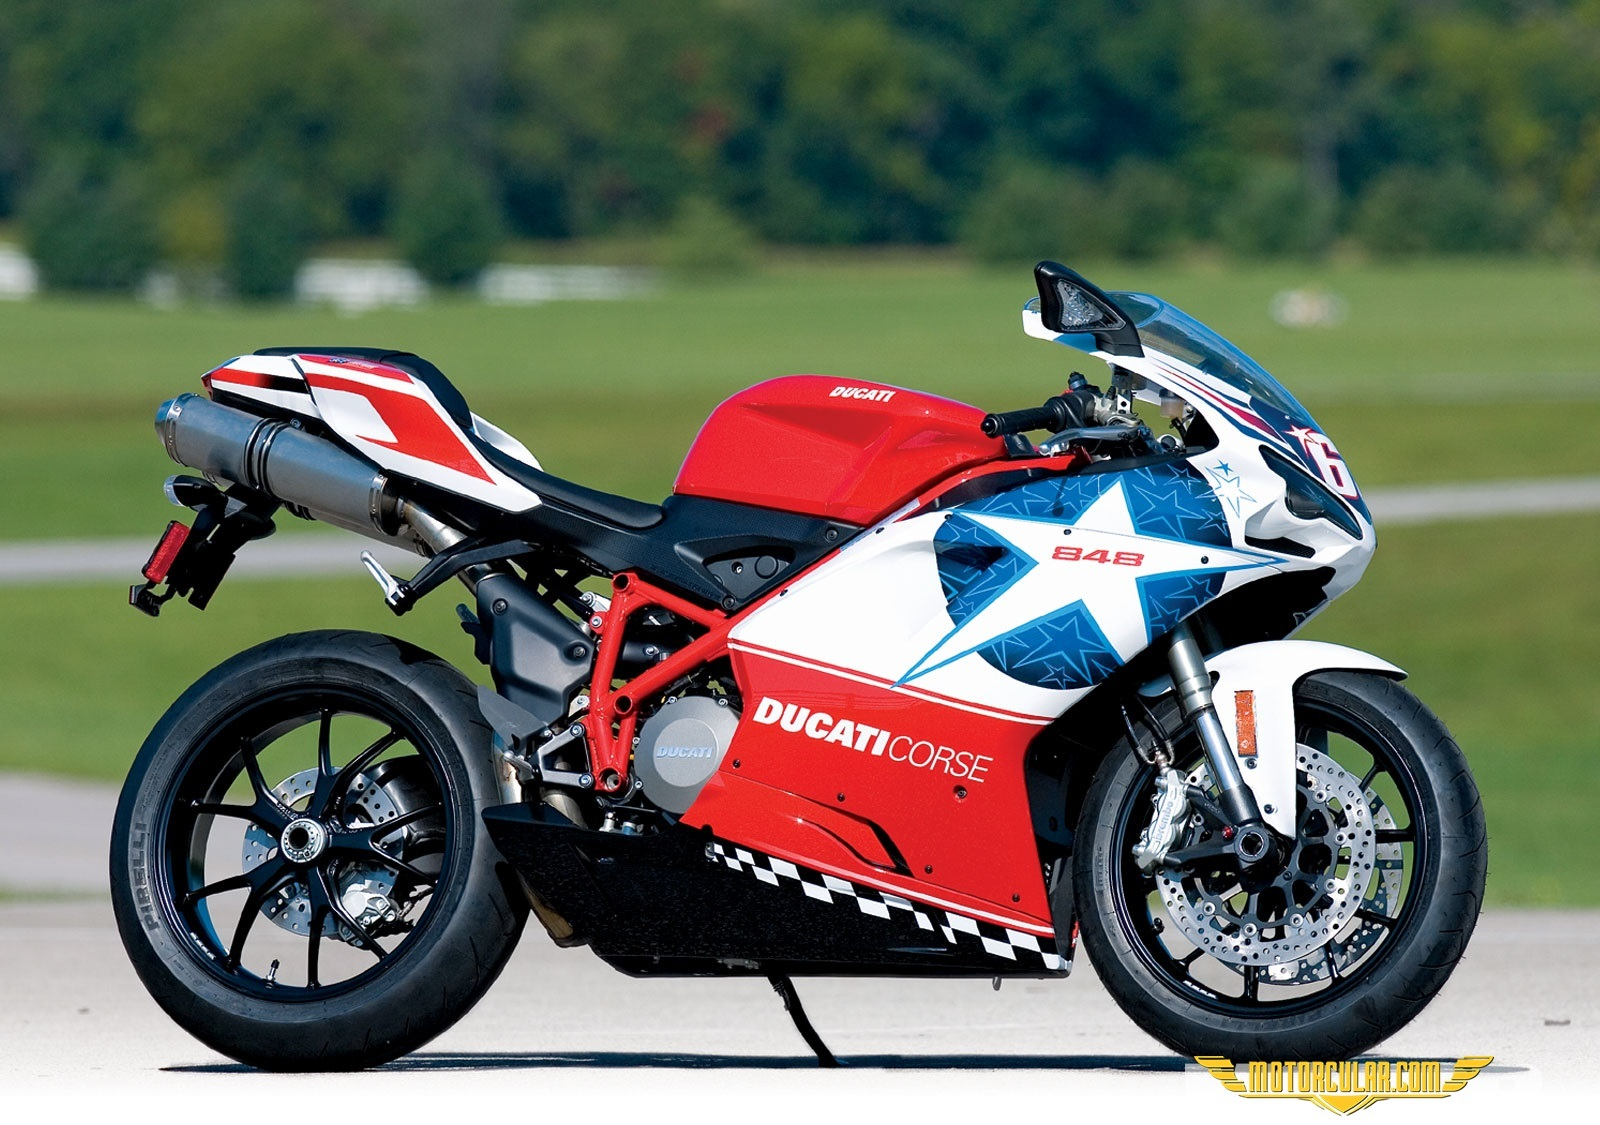 848 Nicky Hayden Edition